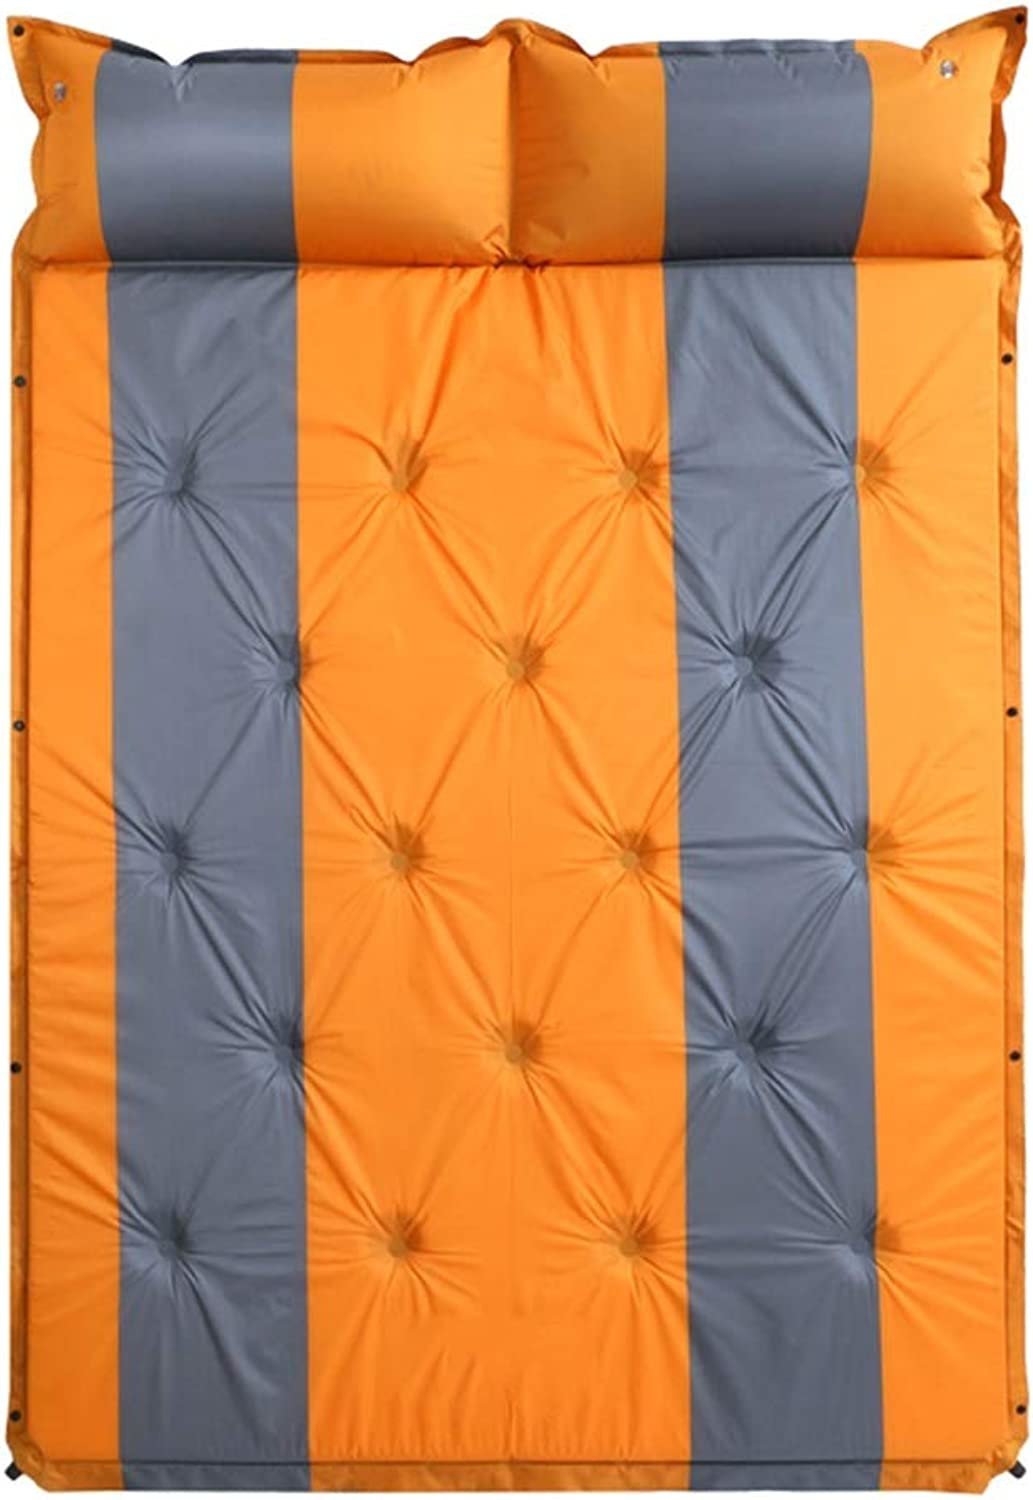 Camping Sleeping Pad  Mat, Best Sleeping Pads for Backpacking, Hiking Air Mattress  Lightweight, Inflatable & Compact, Camp Sleep Pad